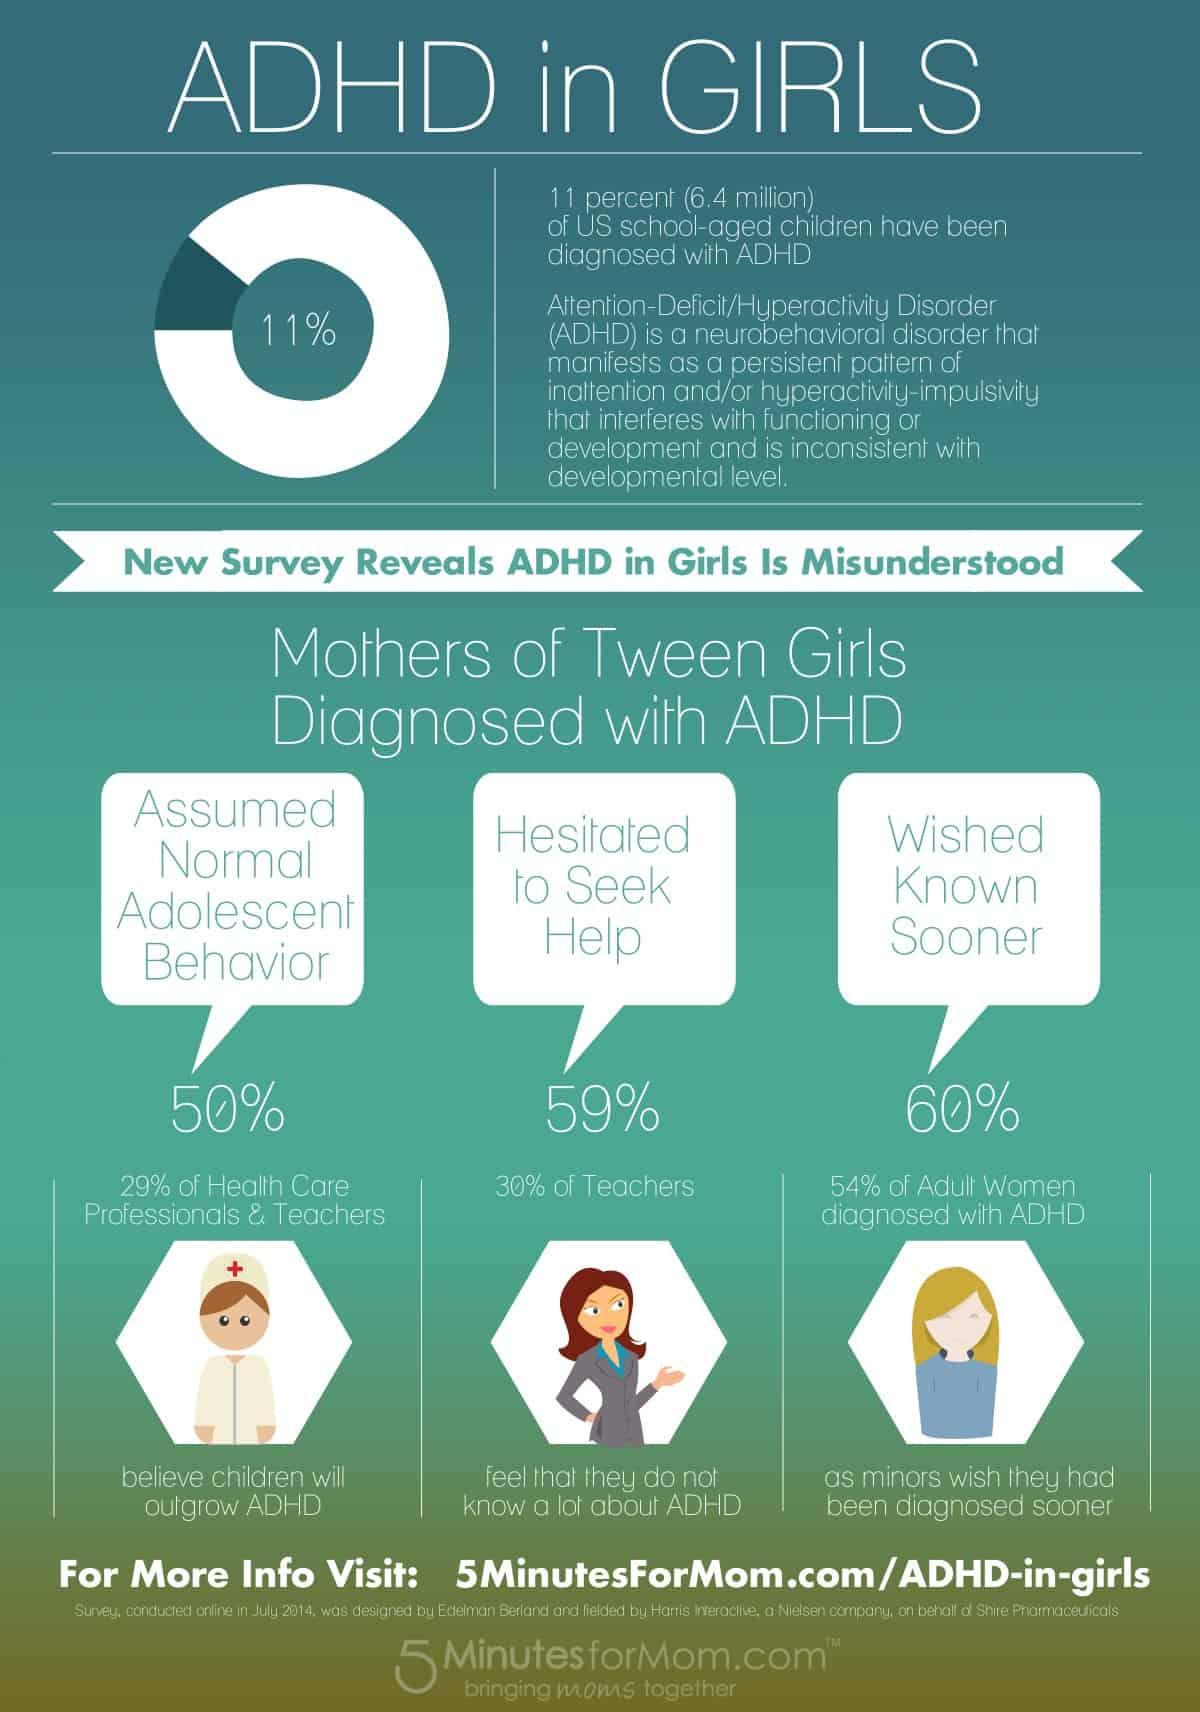 ADHD in Girls Infographic